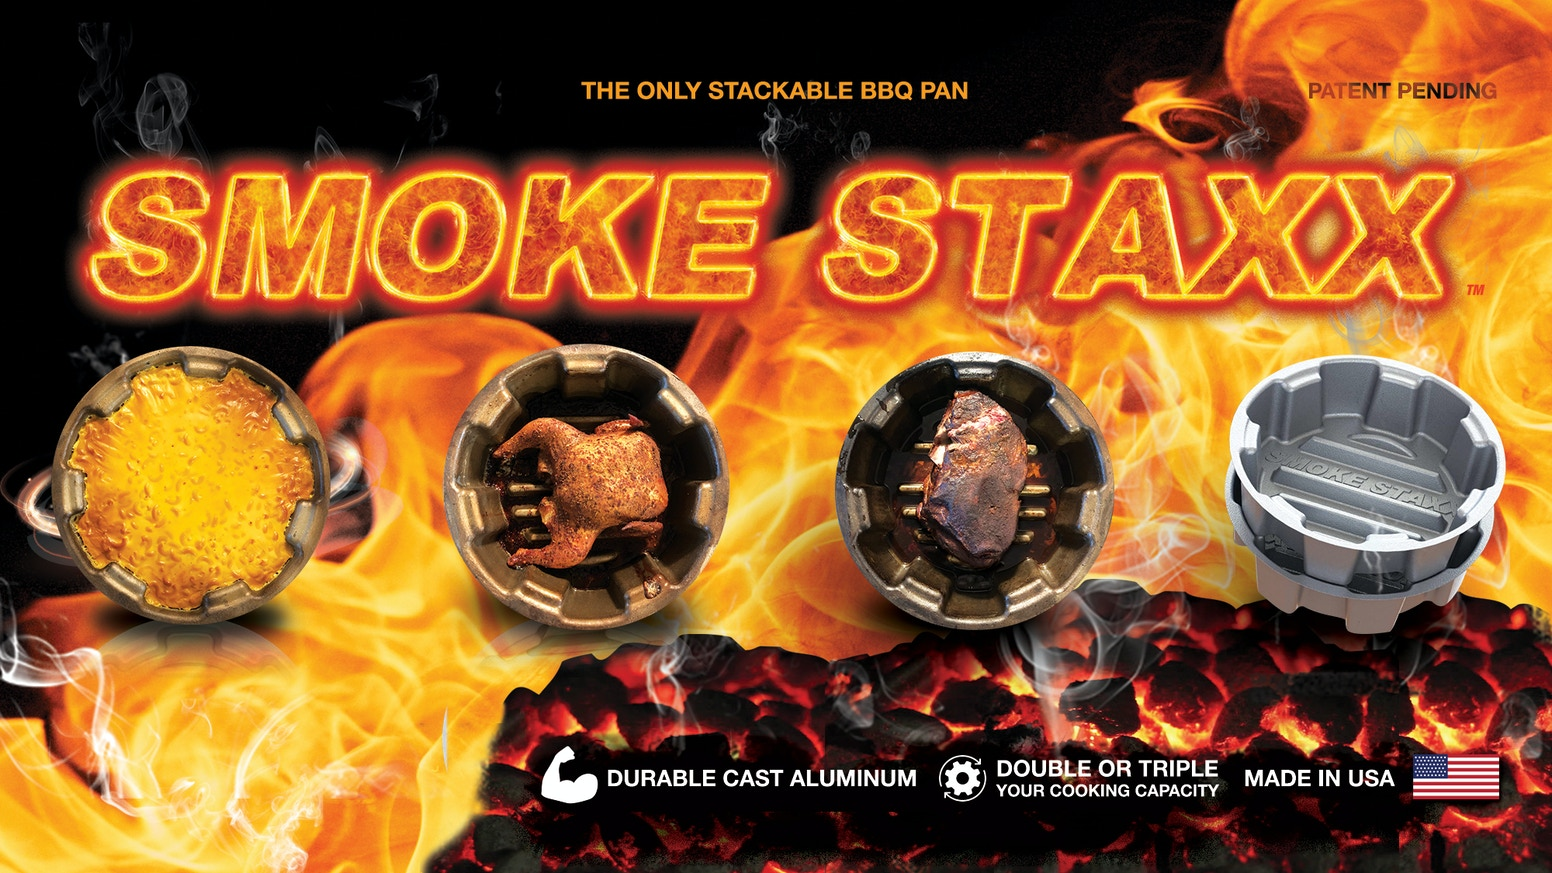 Take your backyard BBQ to the next level!  Maximize your cooking with Smoke Staxx - The Only Stackable BBQ Pans.